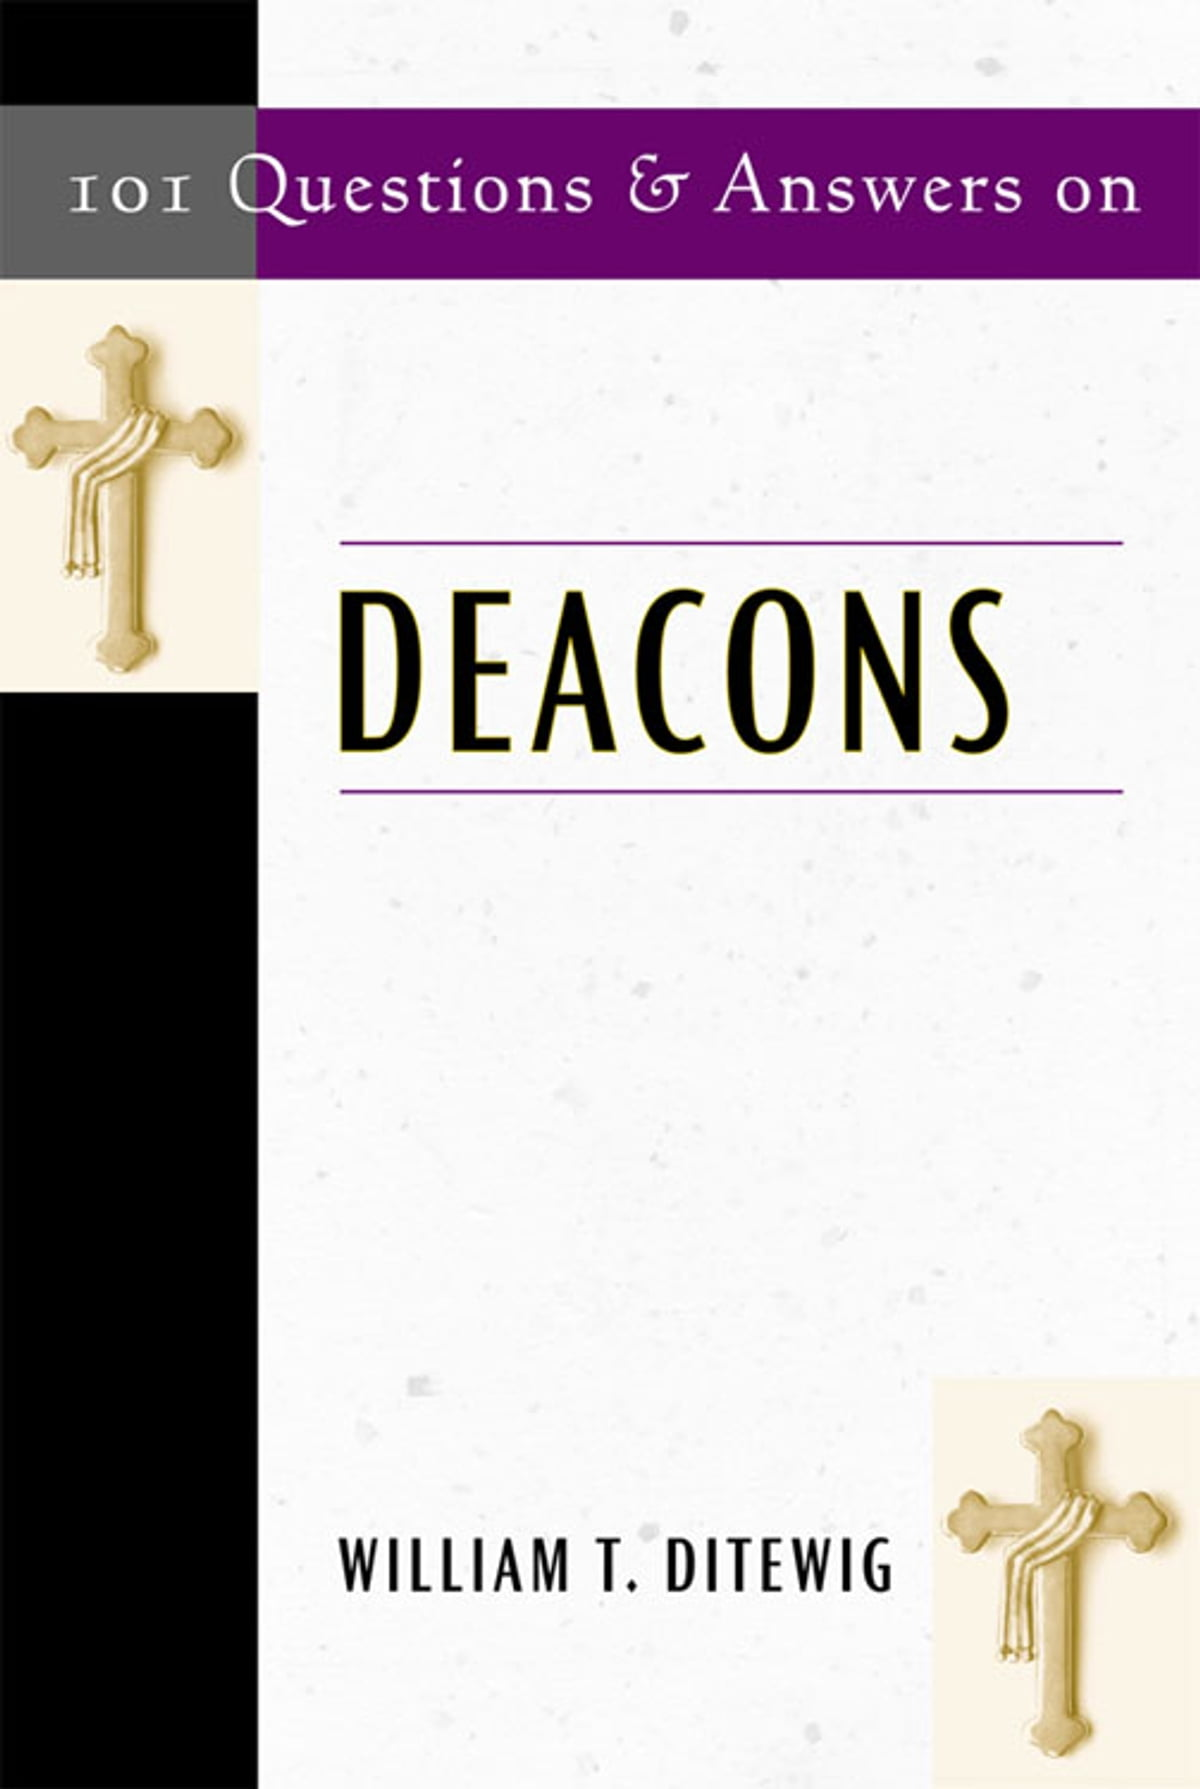 101 Questions & Answers on Deacons eBook by William T. Ditewig -  9781616431112   Rakuten Kobo